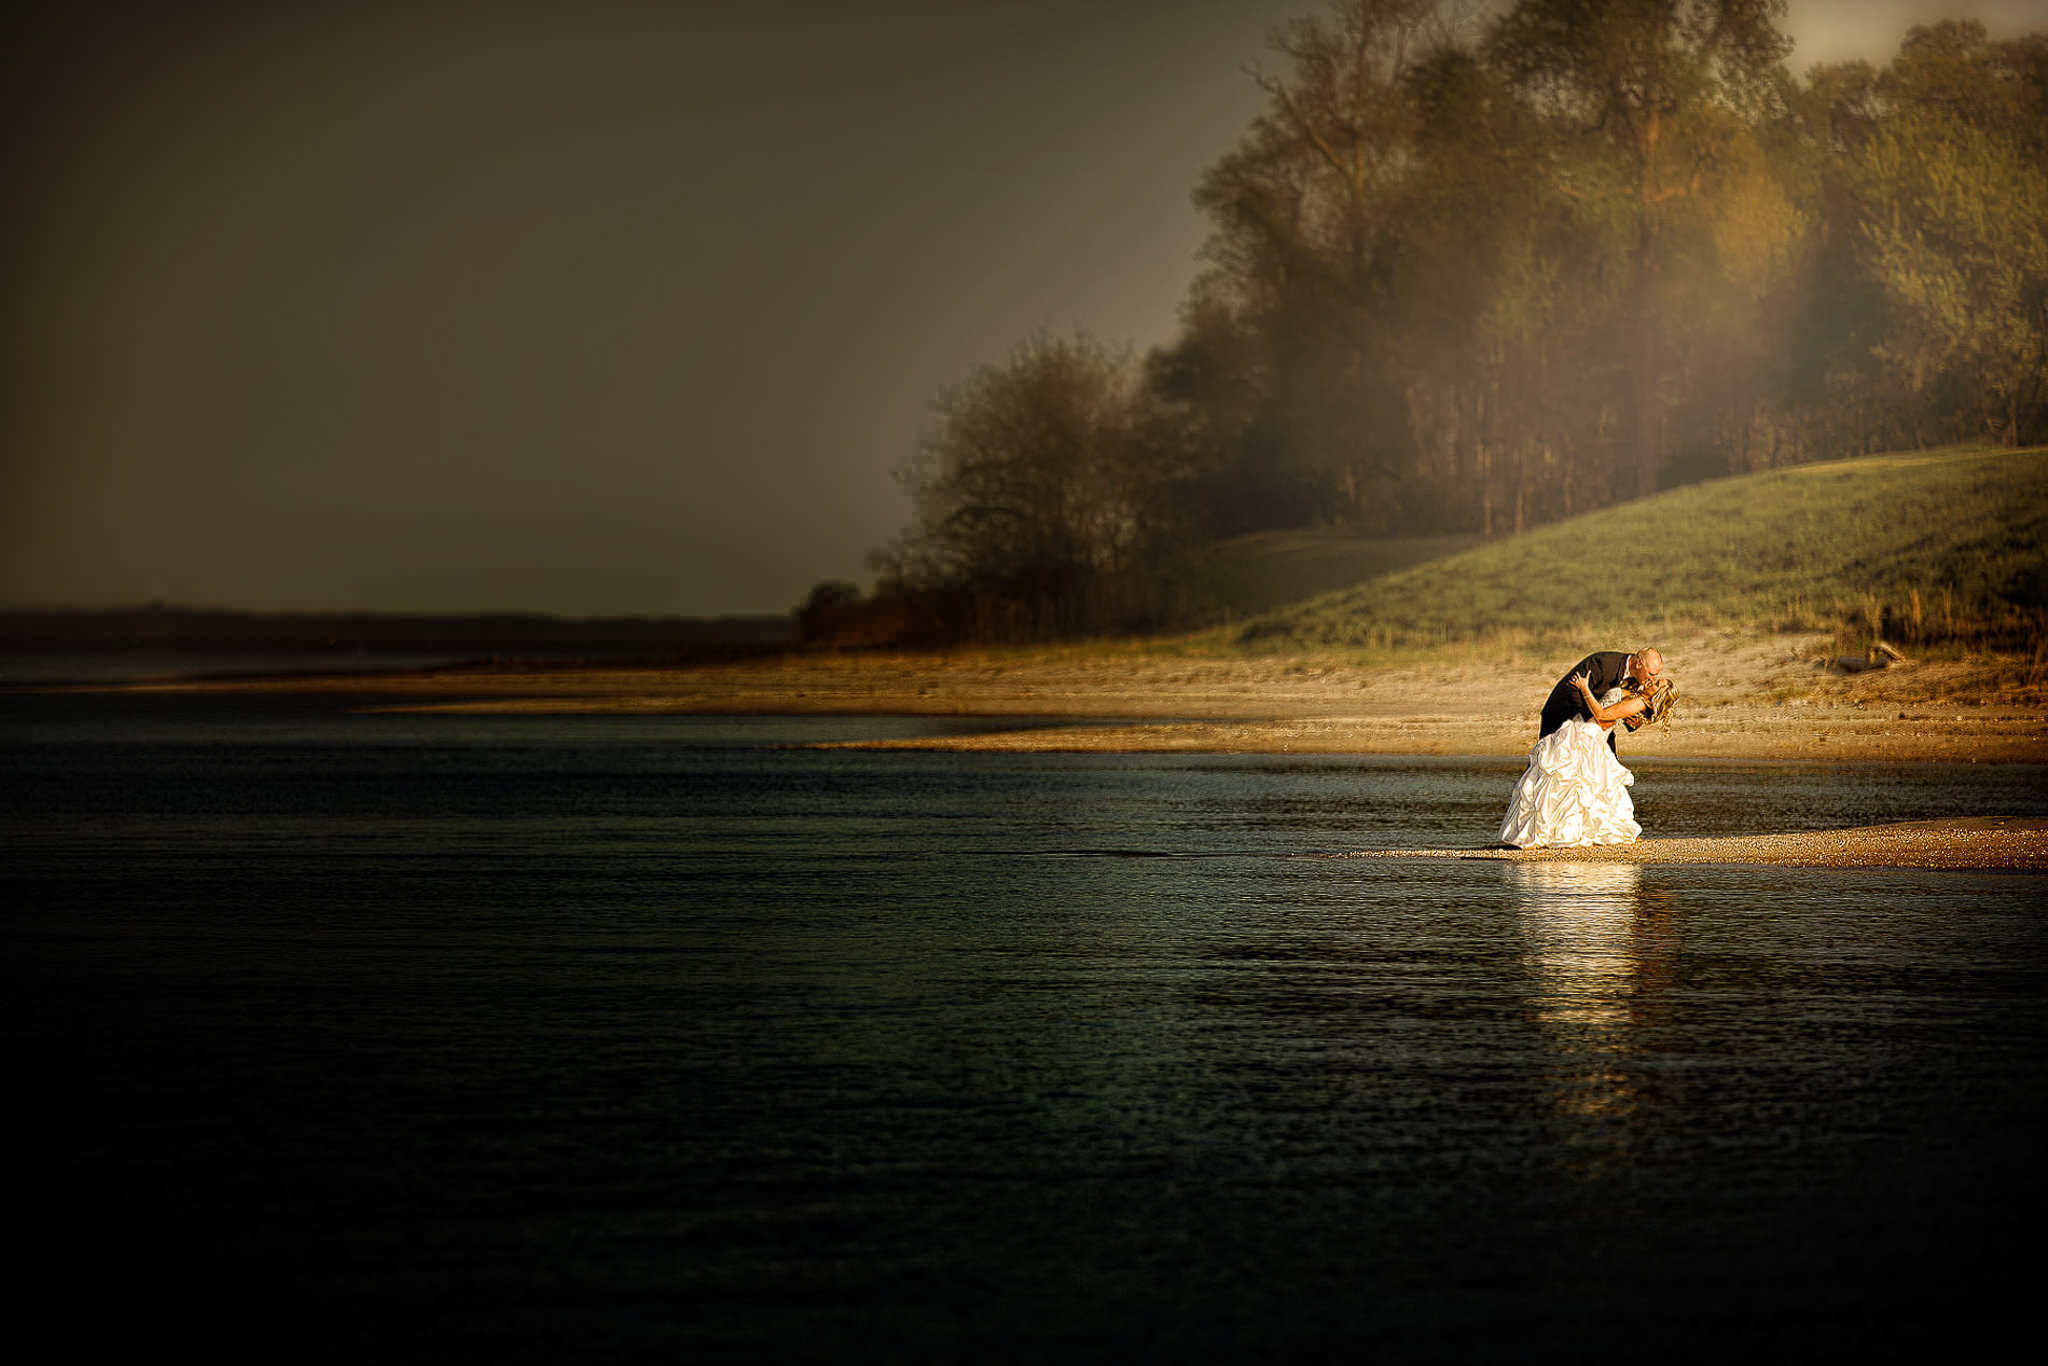 sanderling resort wedding photographers & richmond wedding photographer wedding gallery